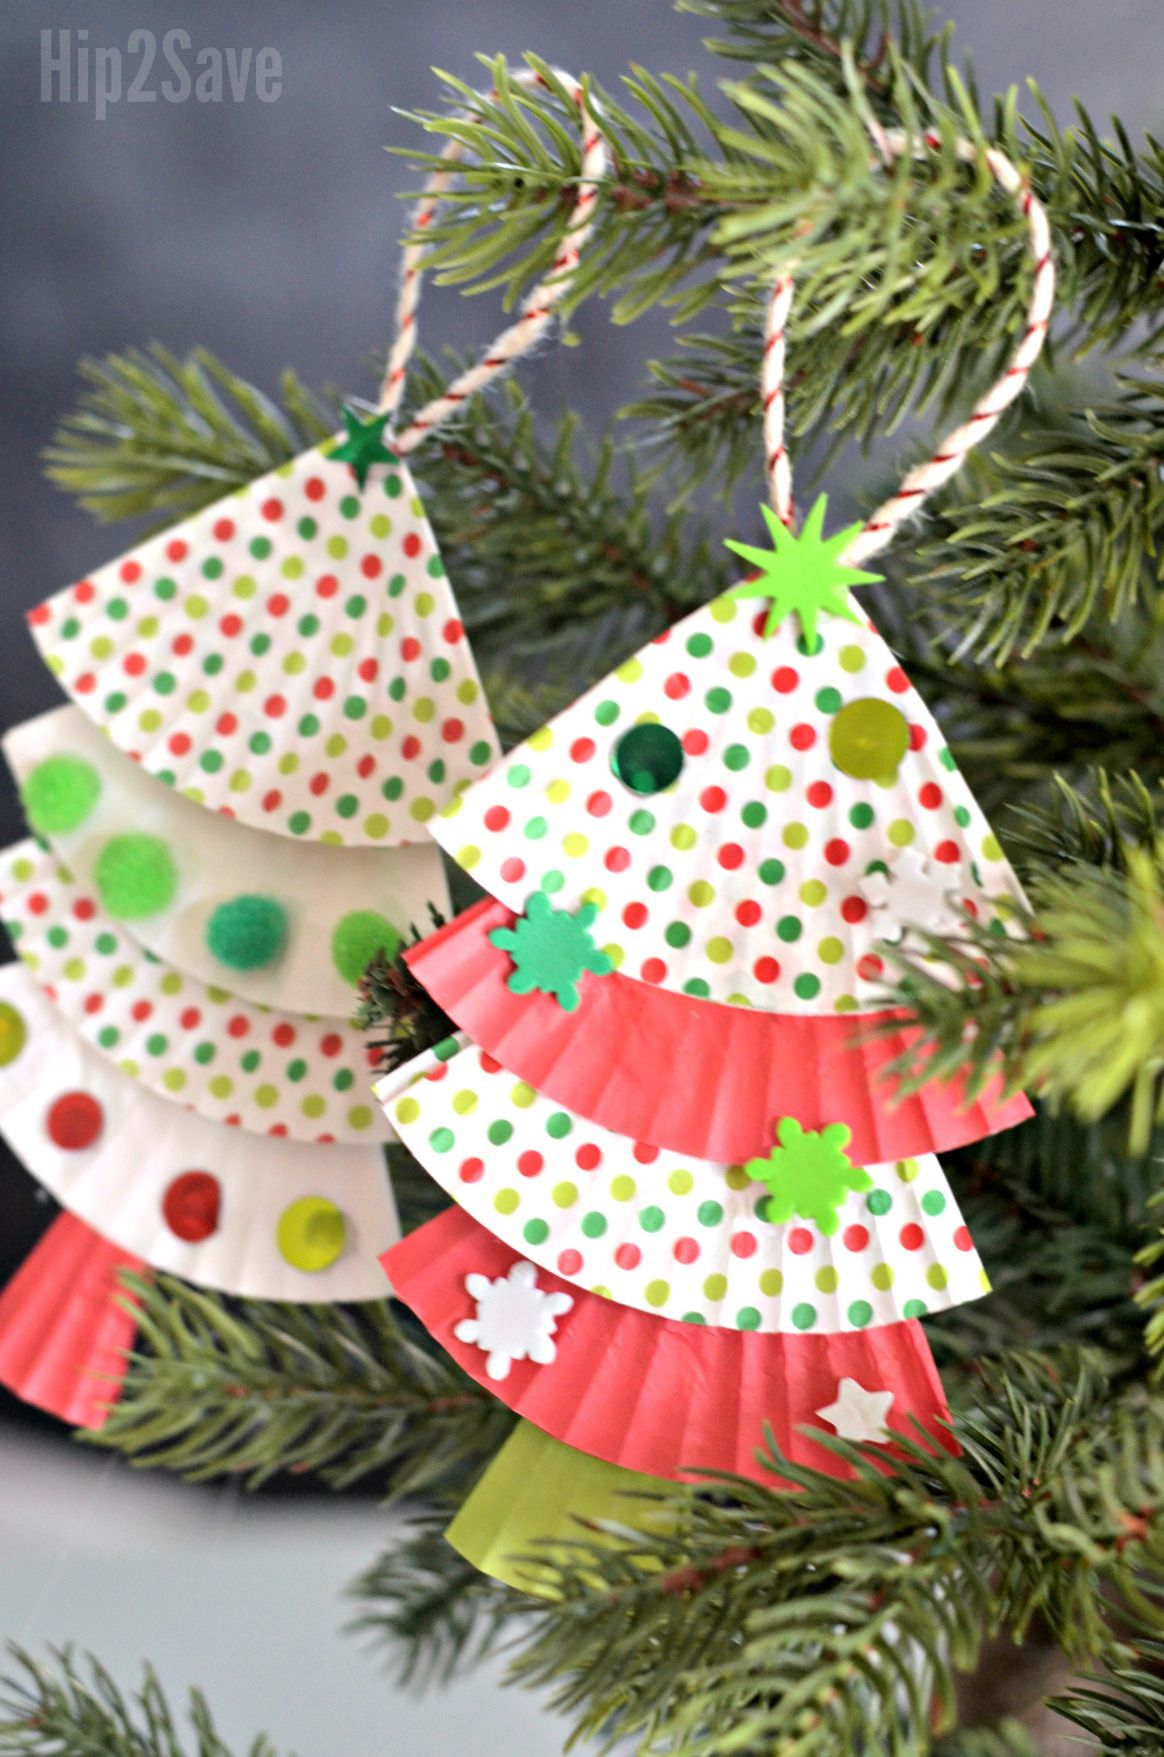 Here S How You Can Easily Turn Cupcake Liners Into The Cutest Christmas Tree Orna Christmas Angel Crafts Preschool Christmas Ornaments Kids Christmas Ornaments